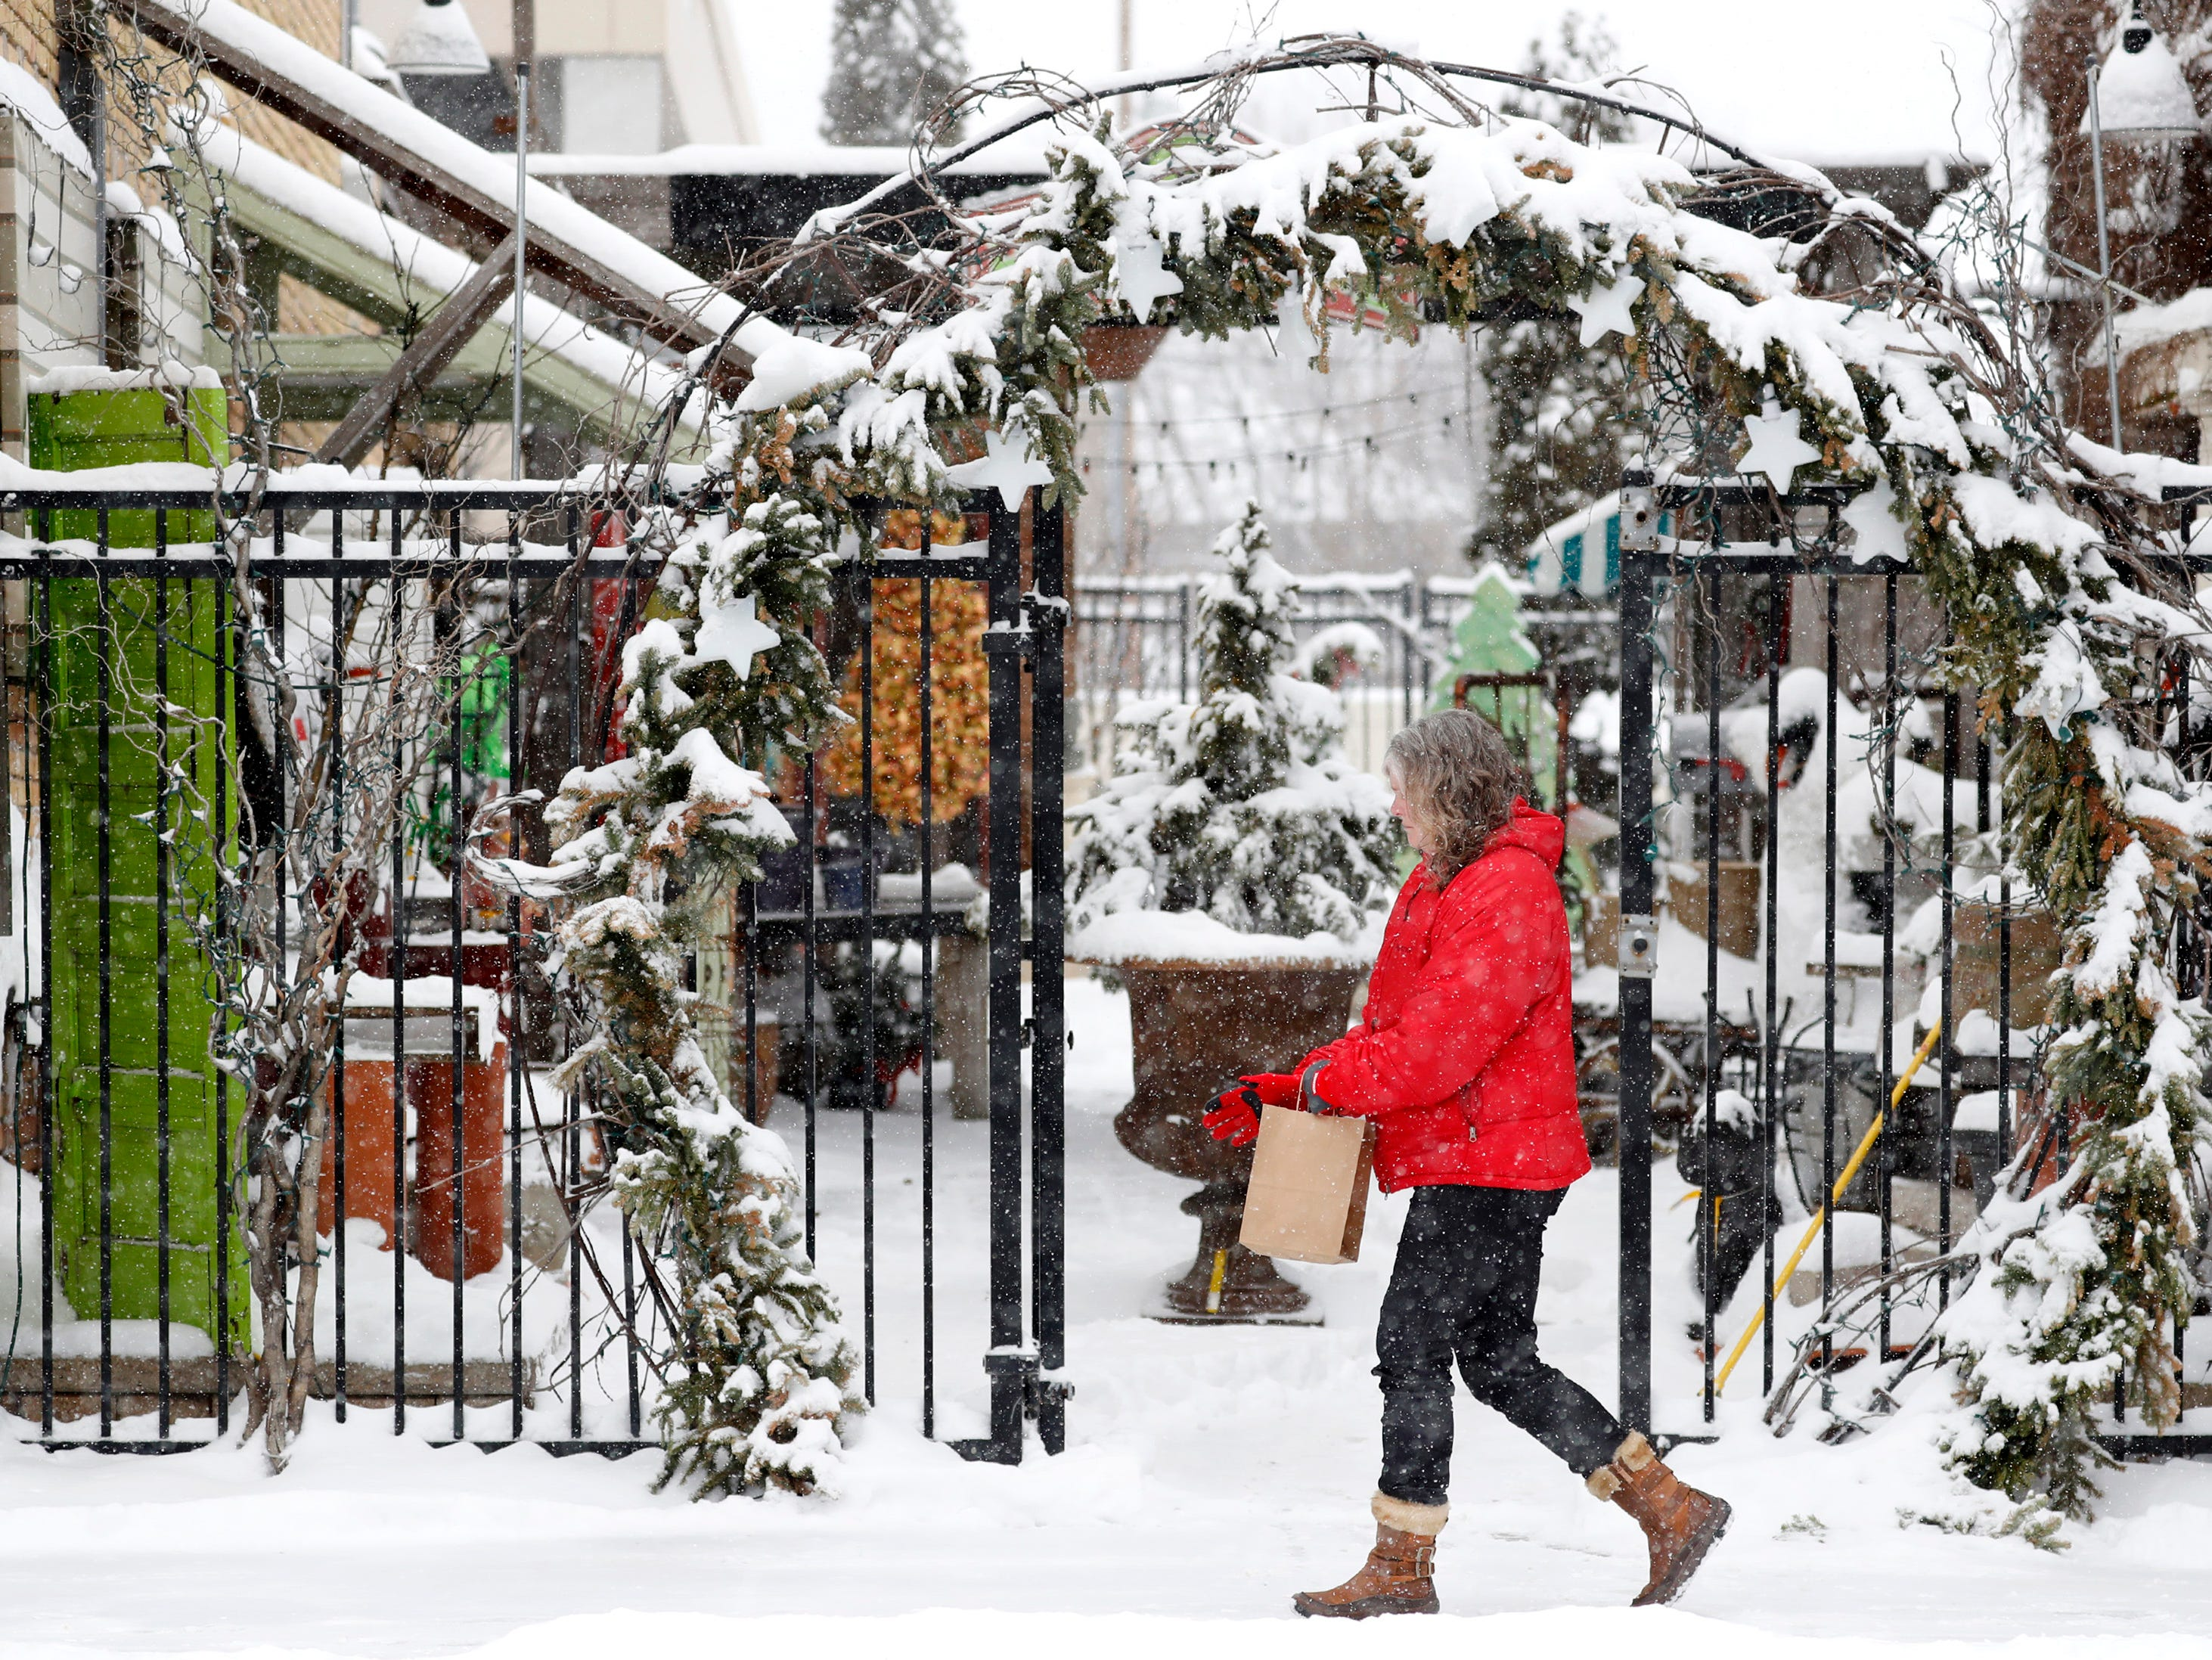 Elizabeth Weklar, of Neenah, walks past a large wreath next to The Wreath Company in downtown Menasha Wednesday, Jan. 23, 2019, in Menasha, Wis.